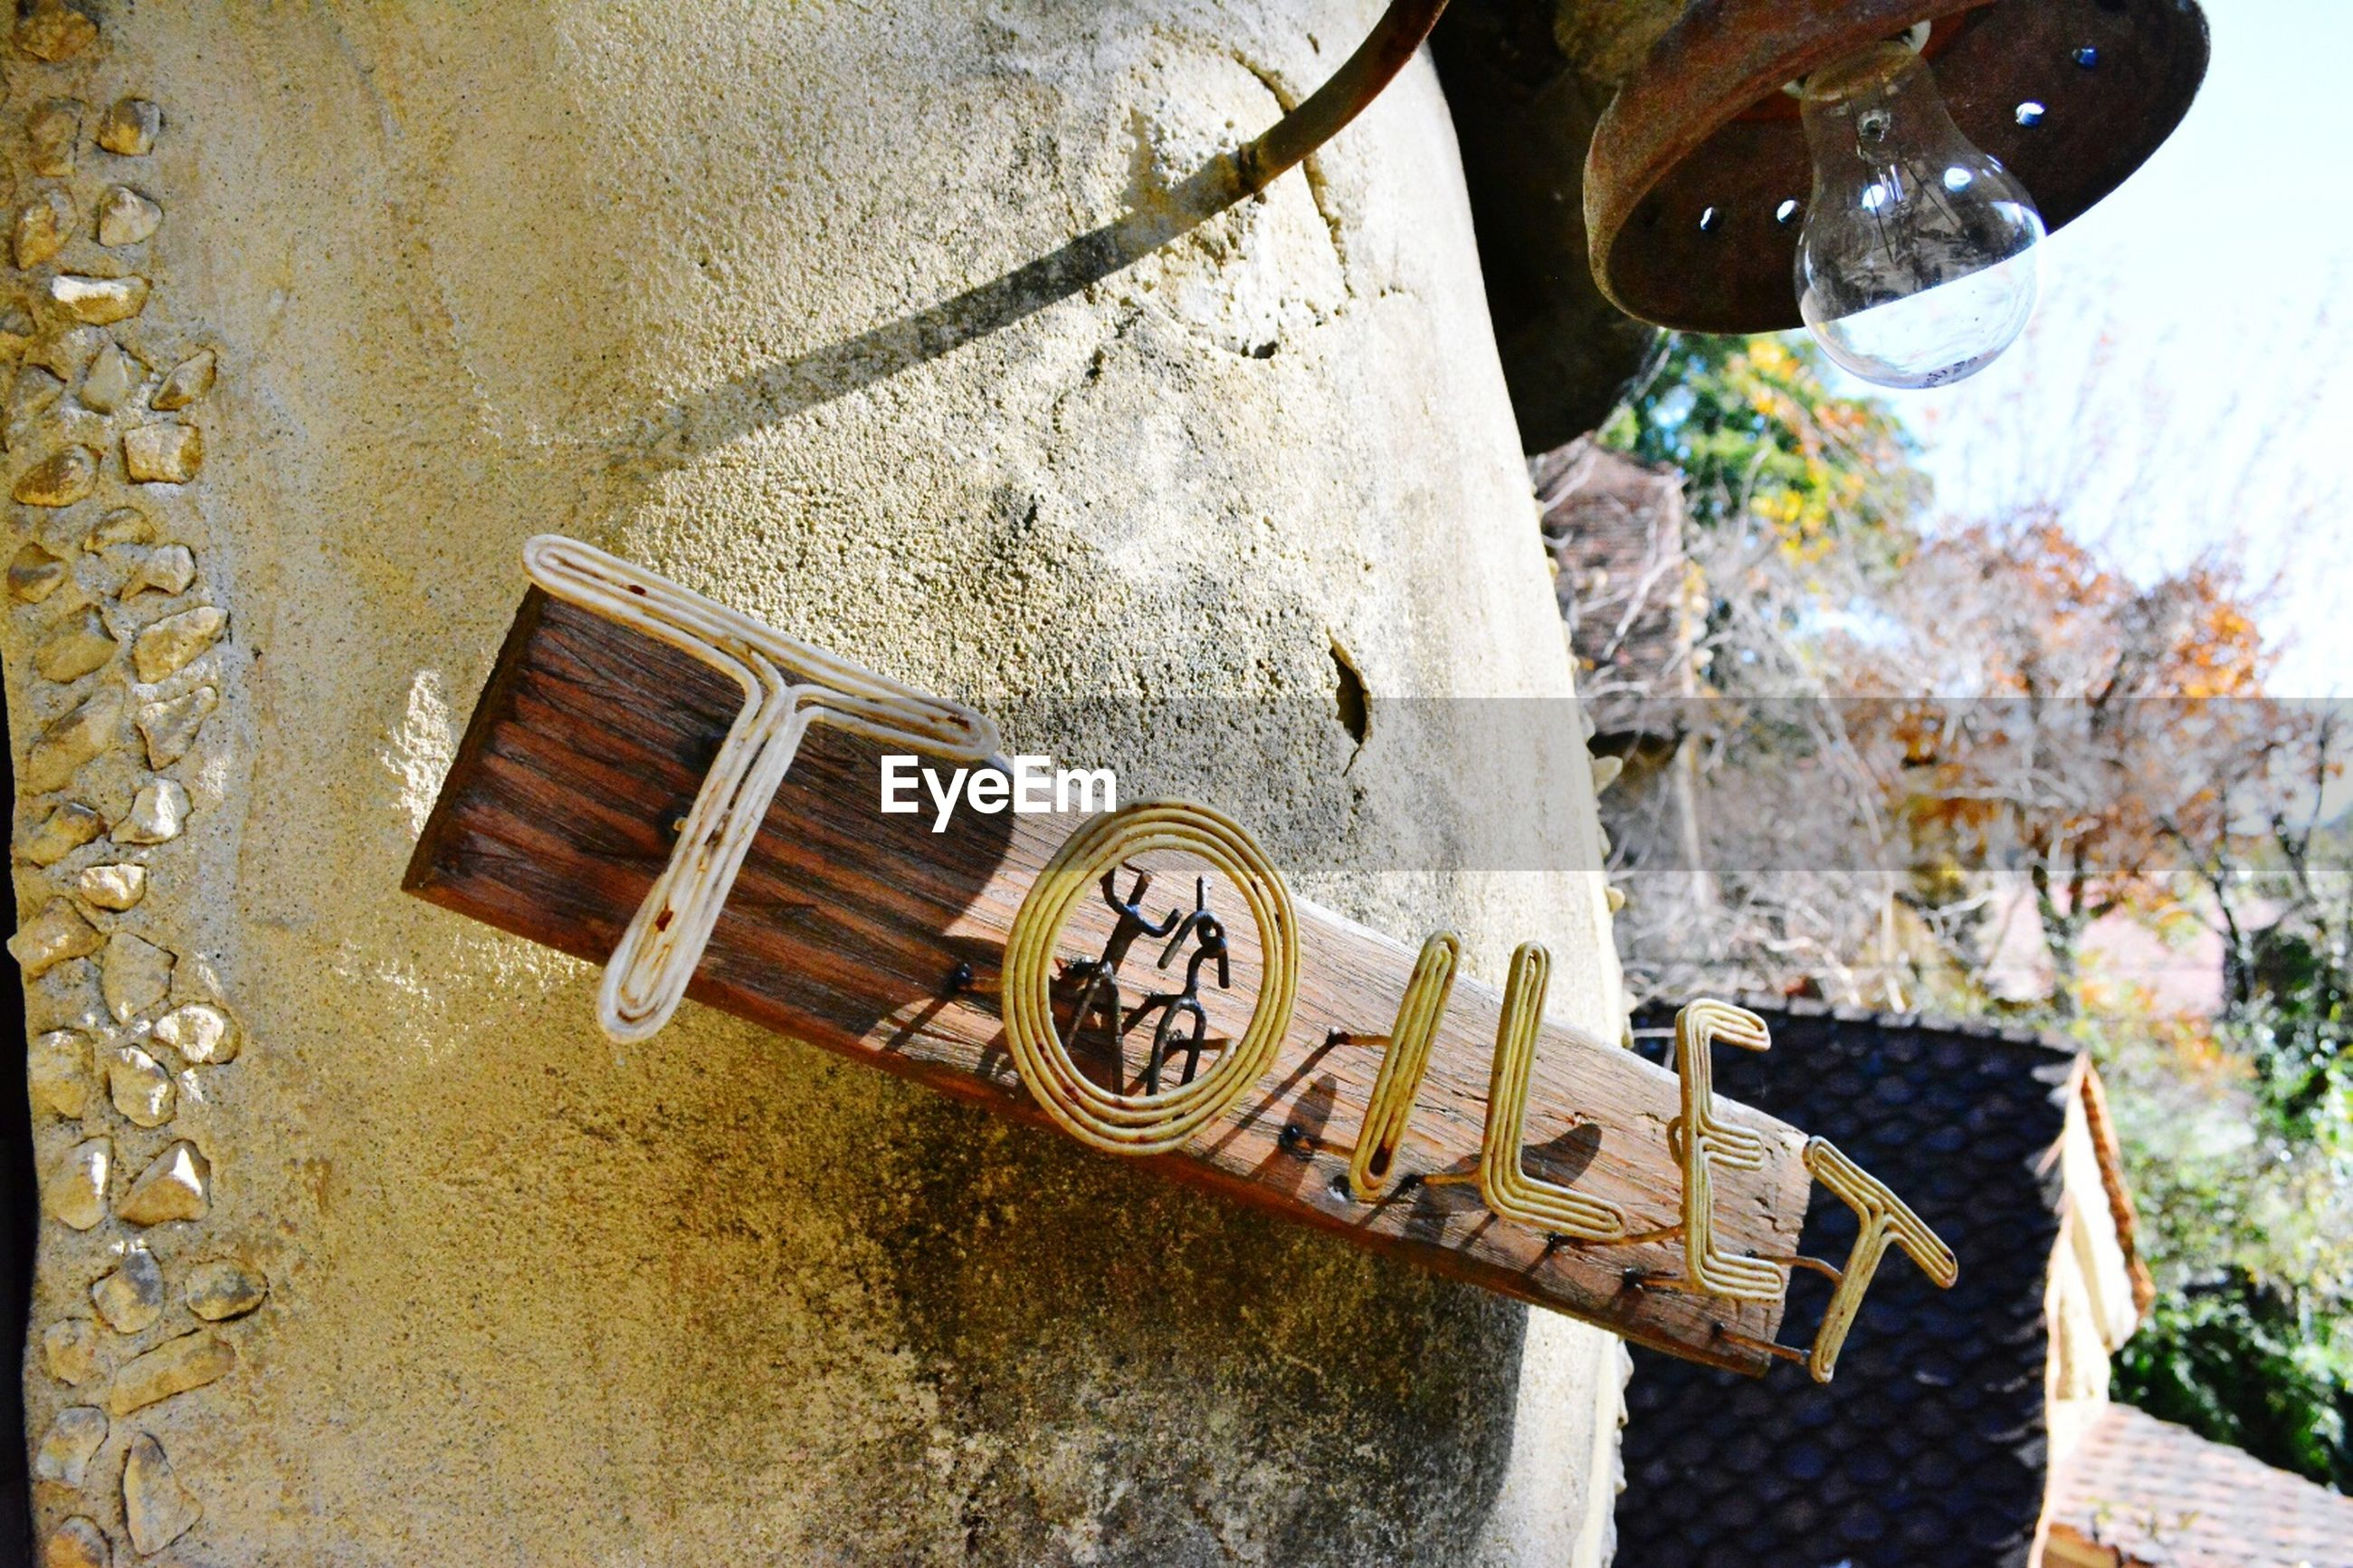 day, music, no people, musical instrument, nature, outdoors, close-up, plant, musical equipment, arts culture and entertainment, time, wood - material, focus on foreground, built structure, sunlight, still life, high angle view, wall - building feature, clock